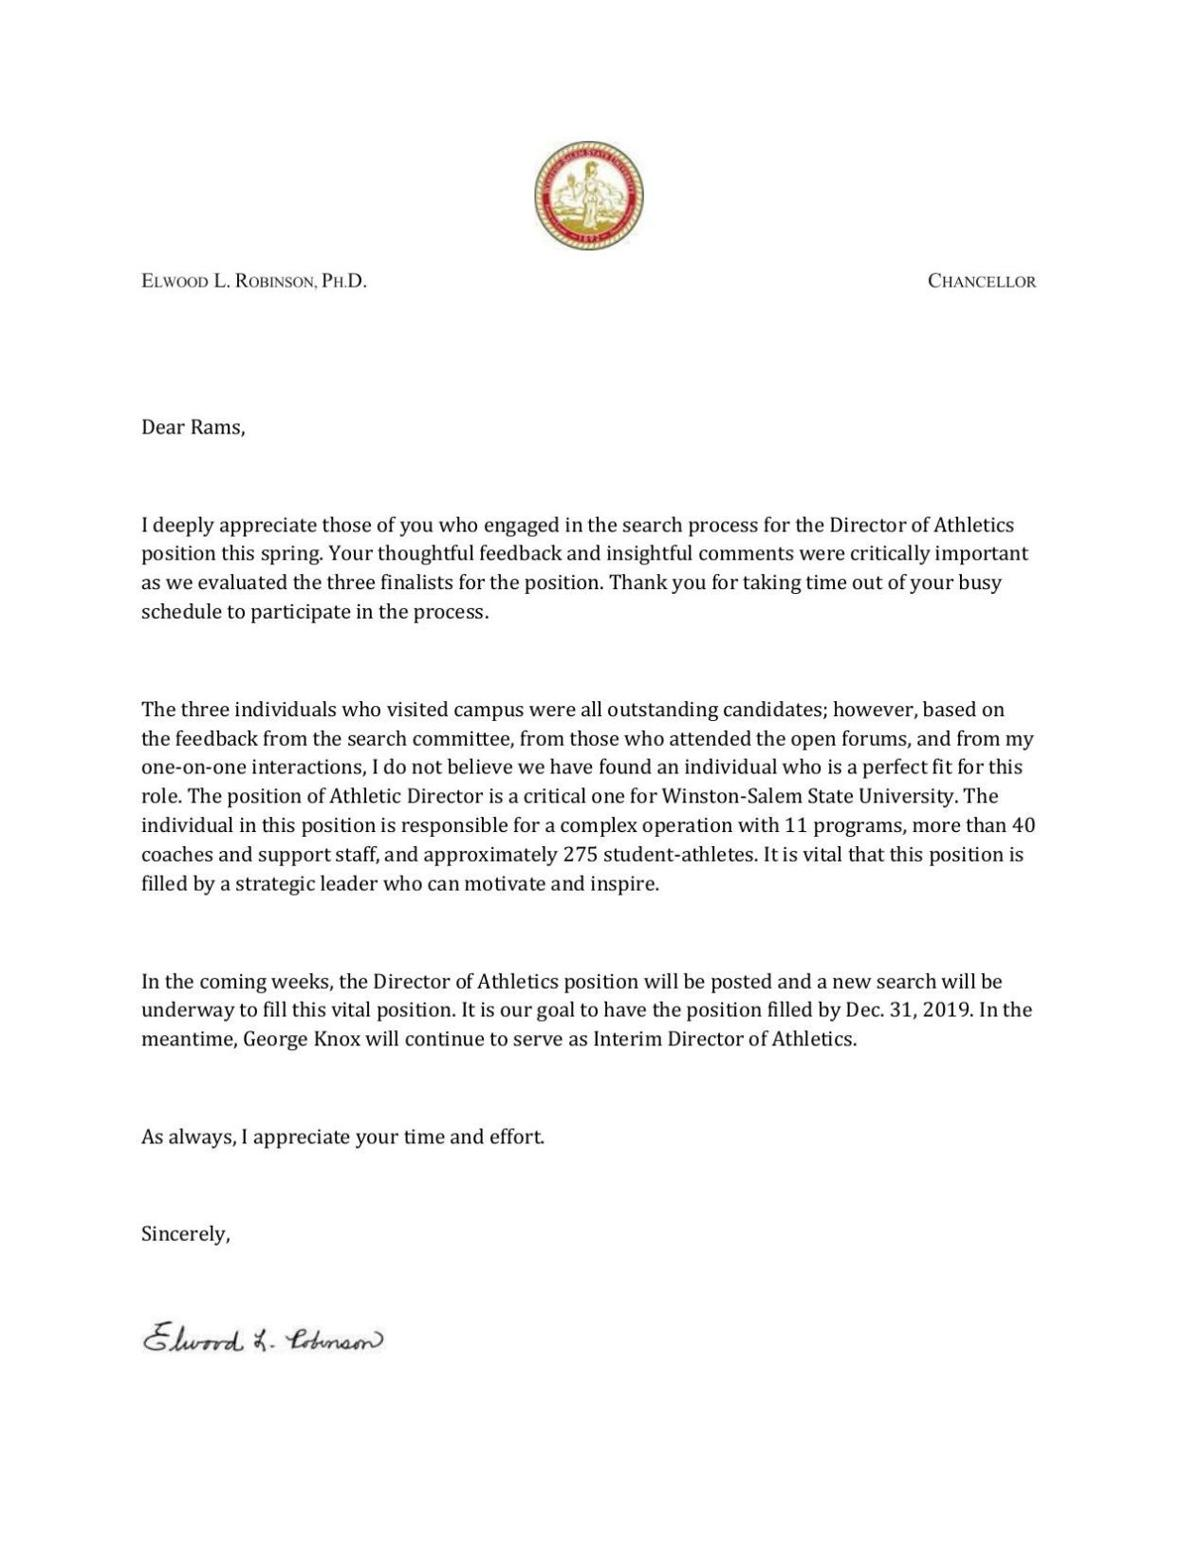 Letter from WSSU chancellor